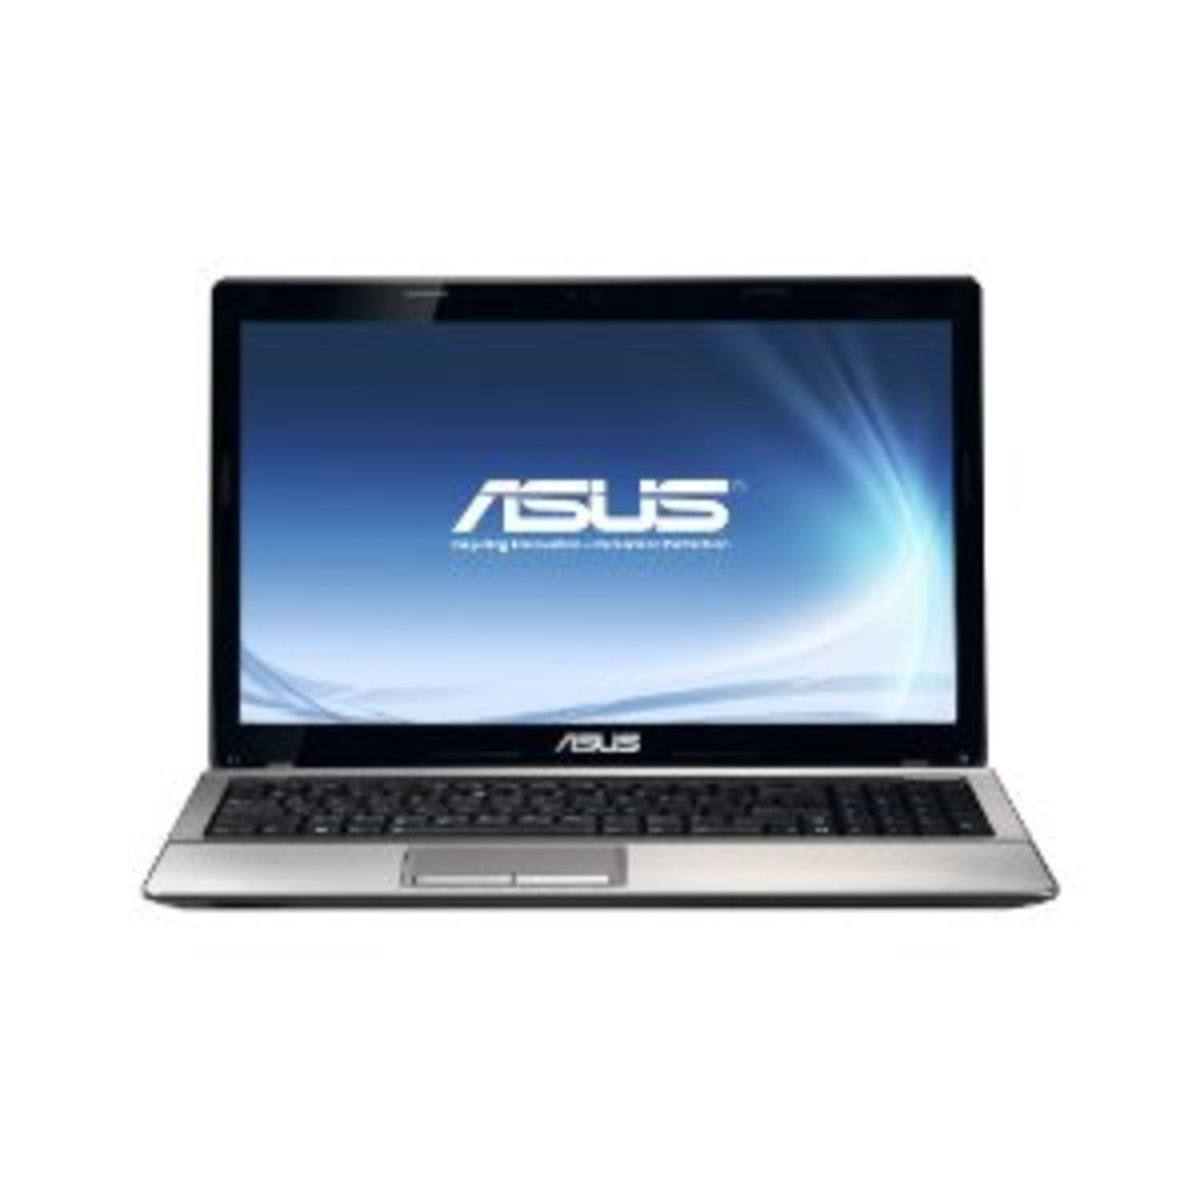 Asus A53S Laptop Review